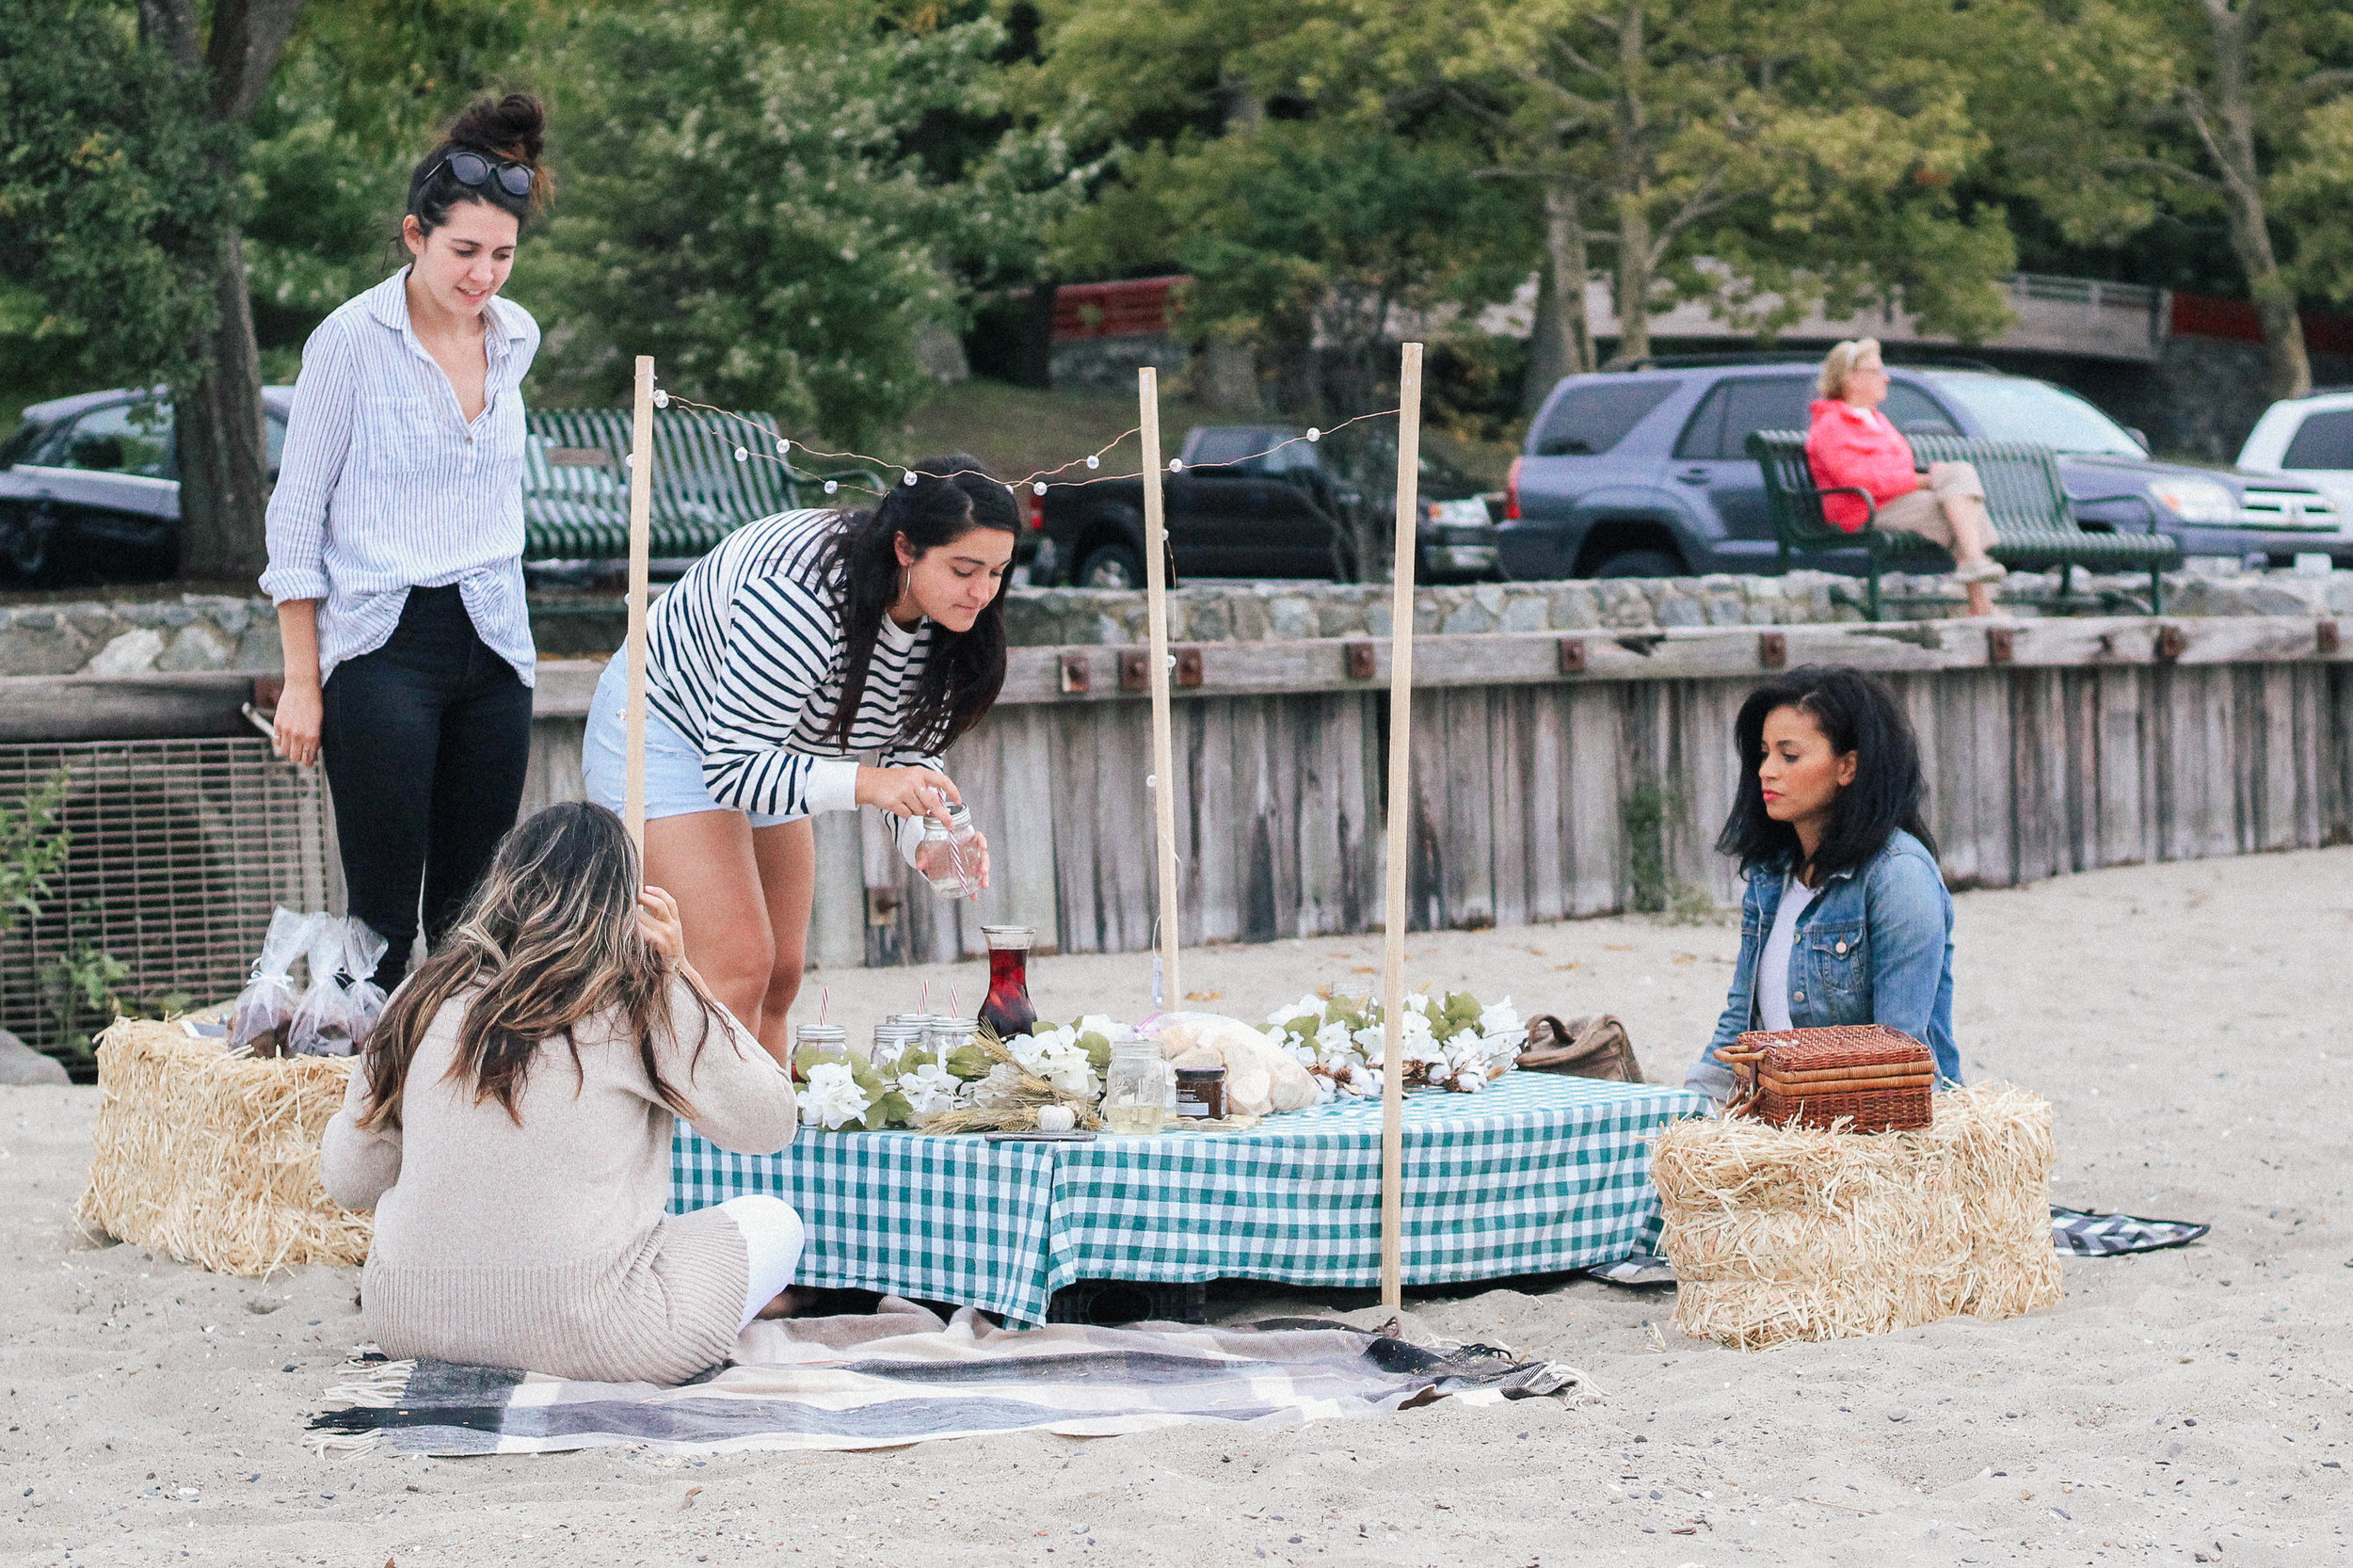 caitlin-james-community-women-rhode isand-dinner outside-diner en dehors